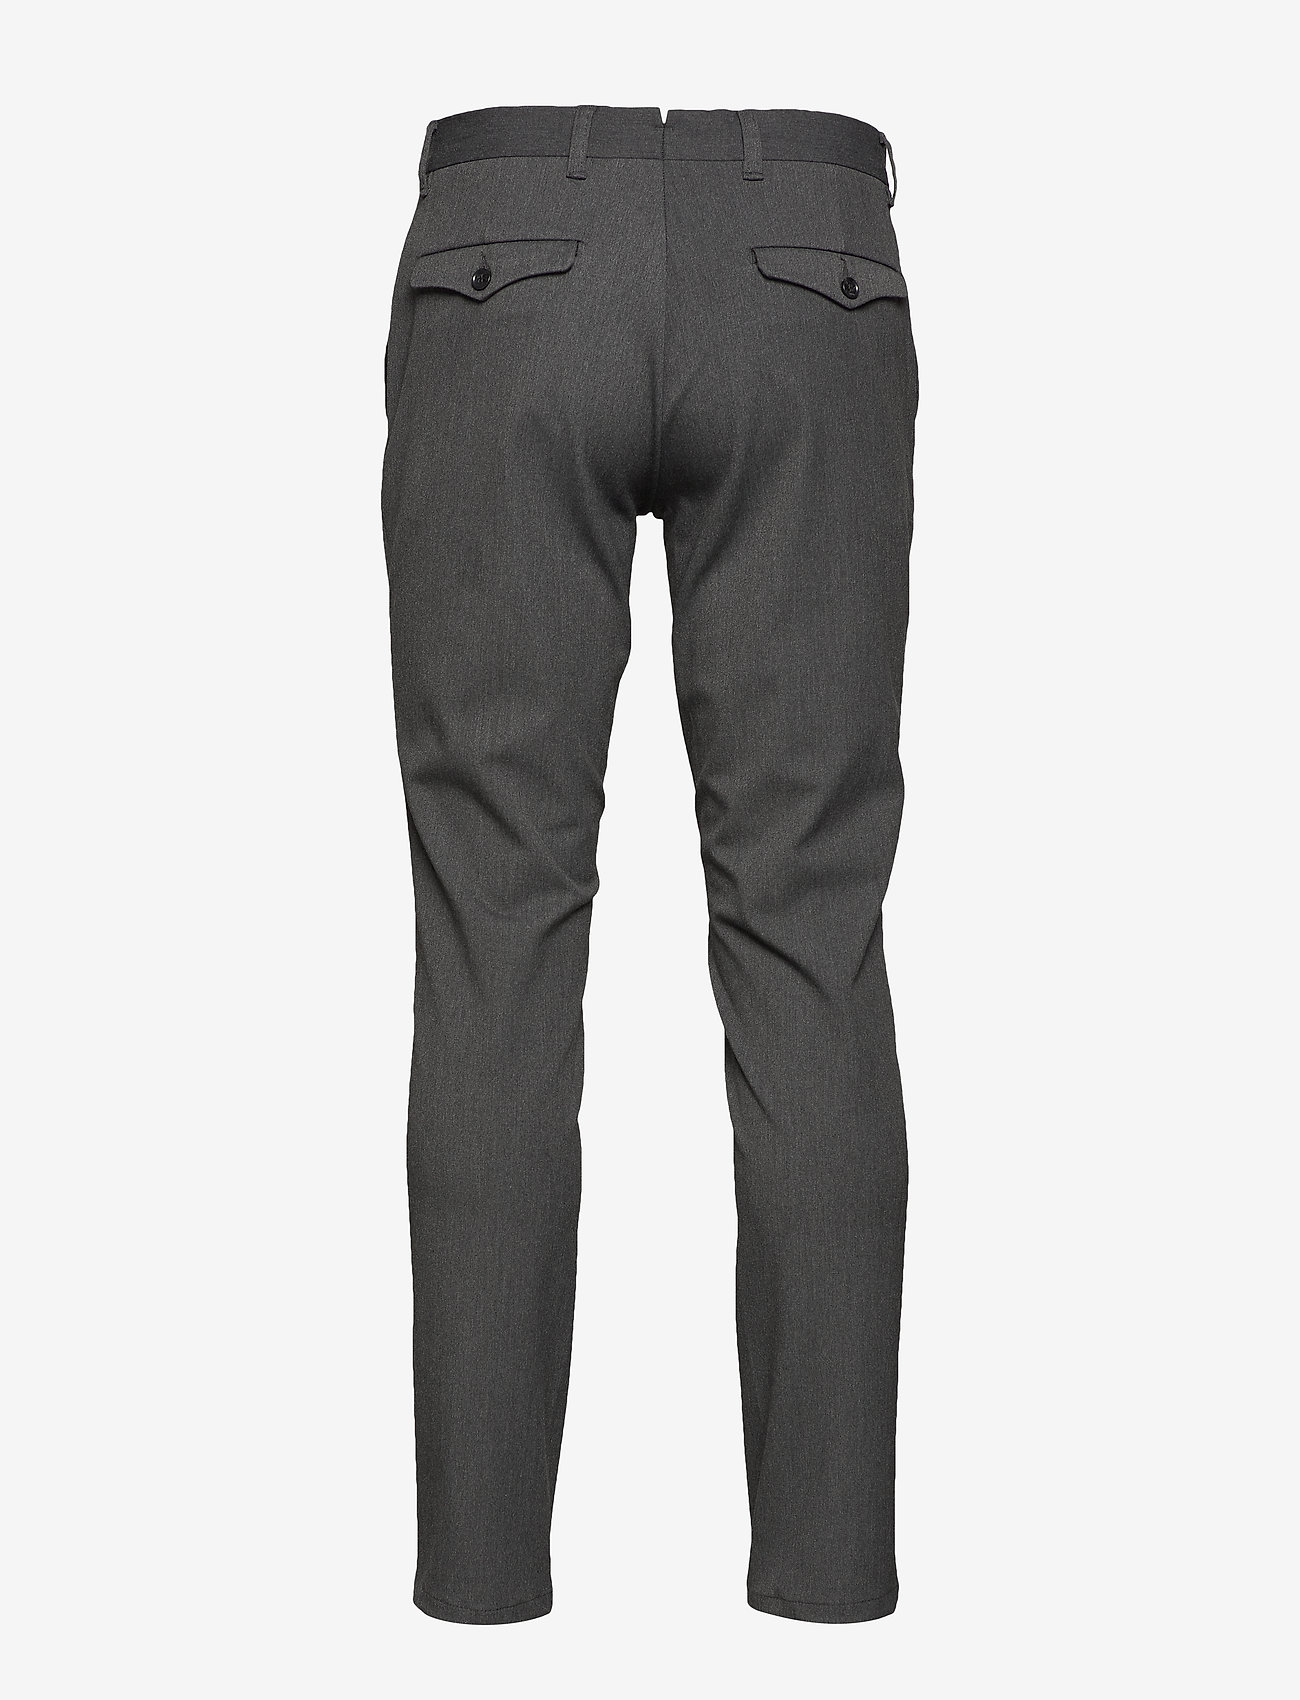 Selected Homme - SLHSLIM-CARLO FLEX PANTS B NOOS - suitbukser - grey melange - 1